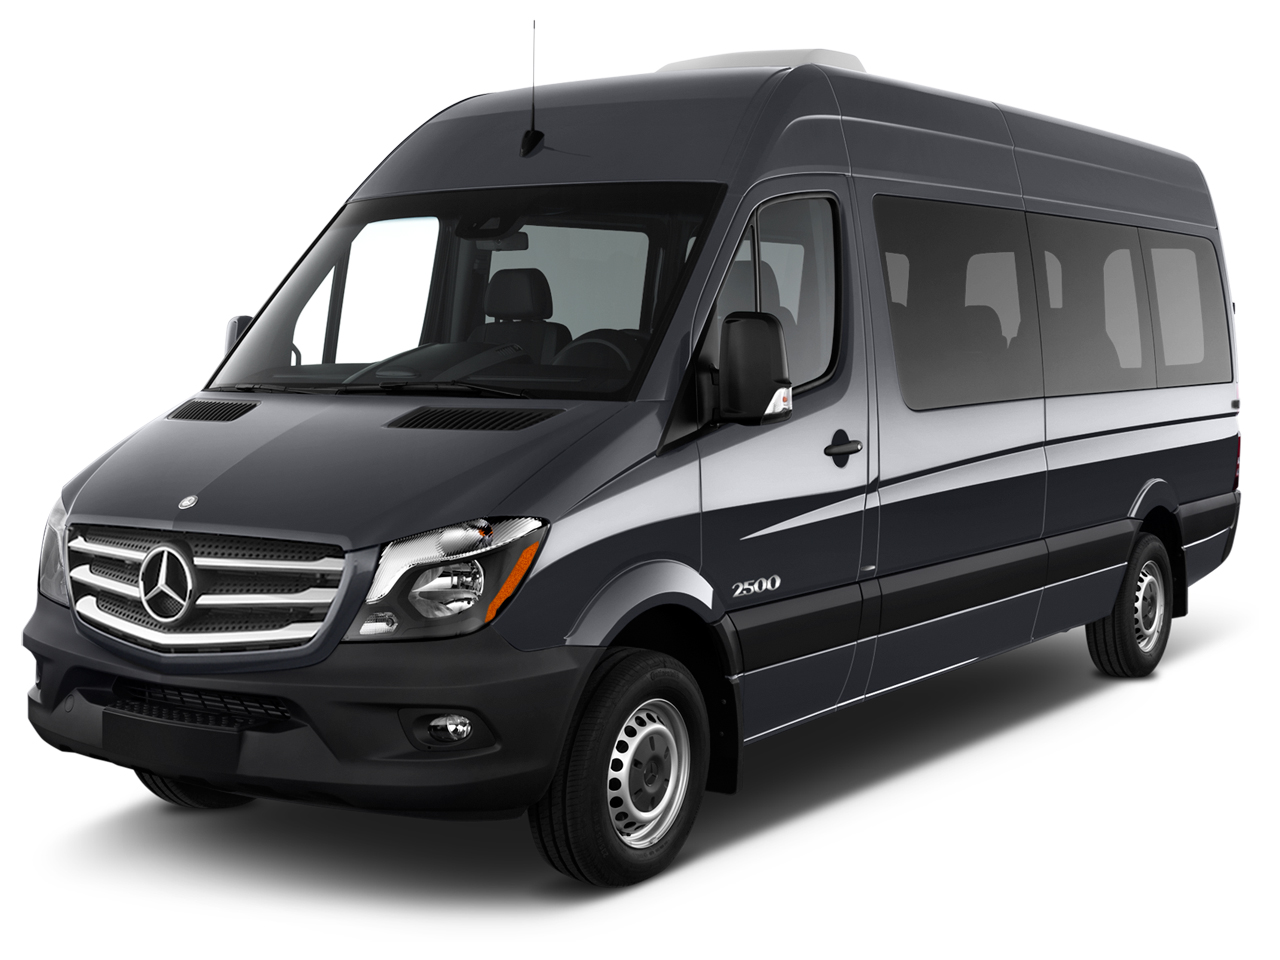 2017 mercedes benz sprinter passenger van review ratings for Luxury mercedes benz sprinter